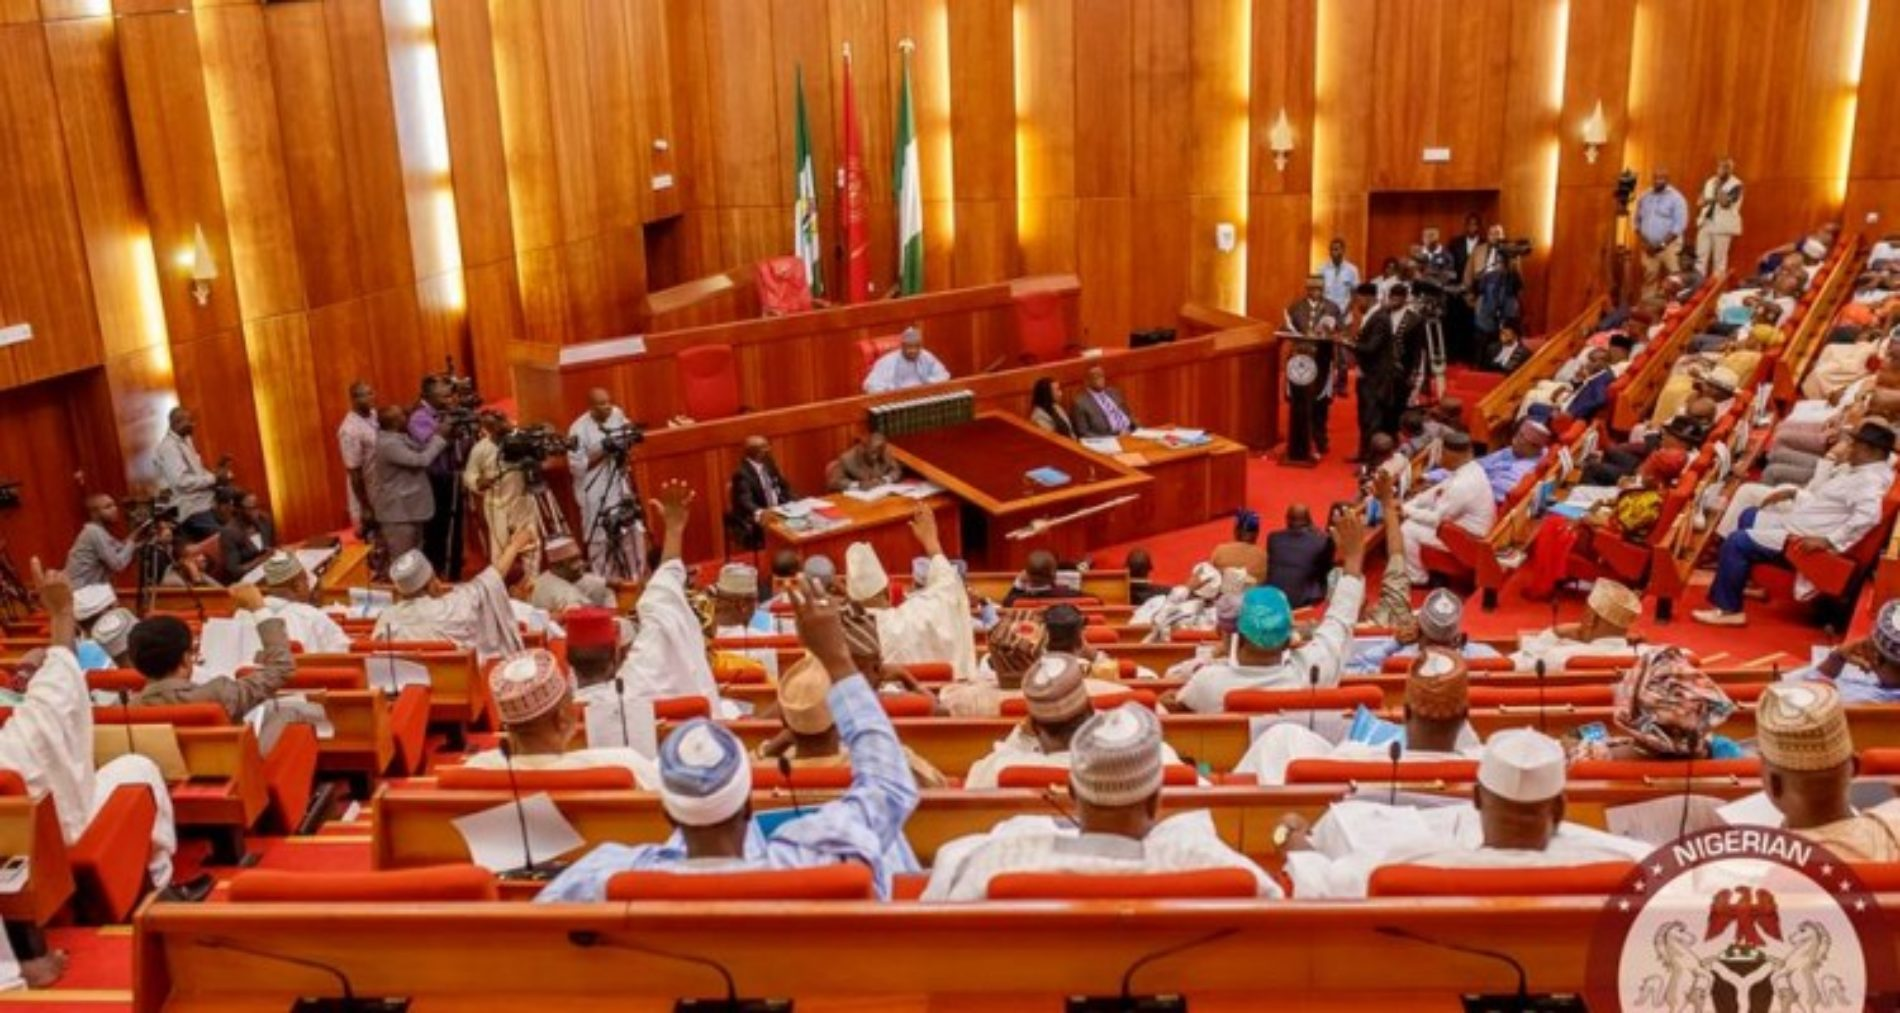 The Nigerian Senate wants hate speech offenders to die by hanging